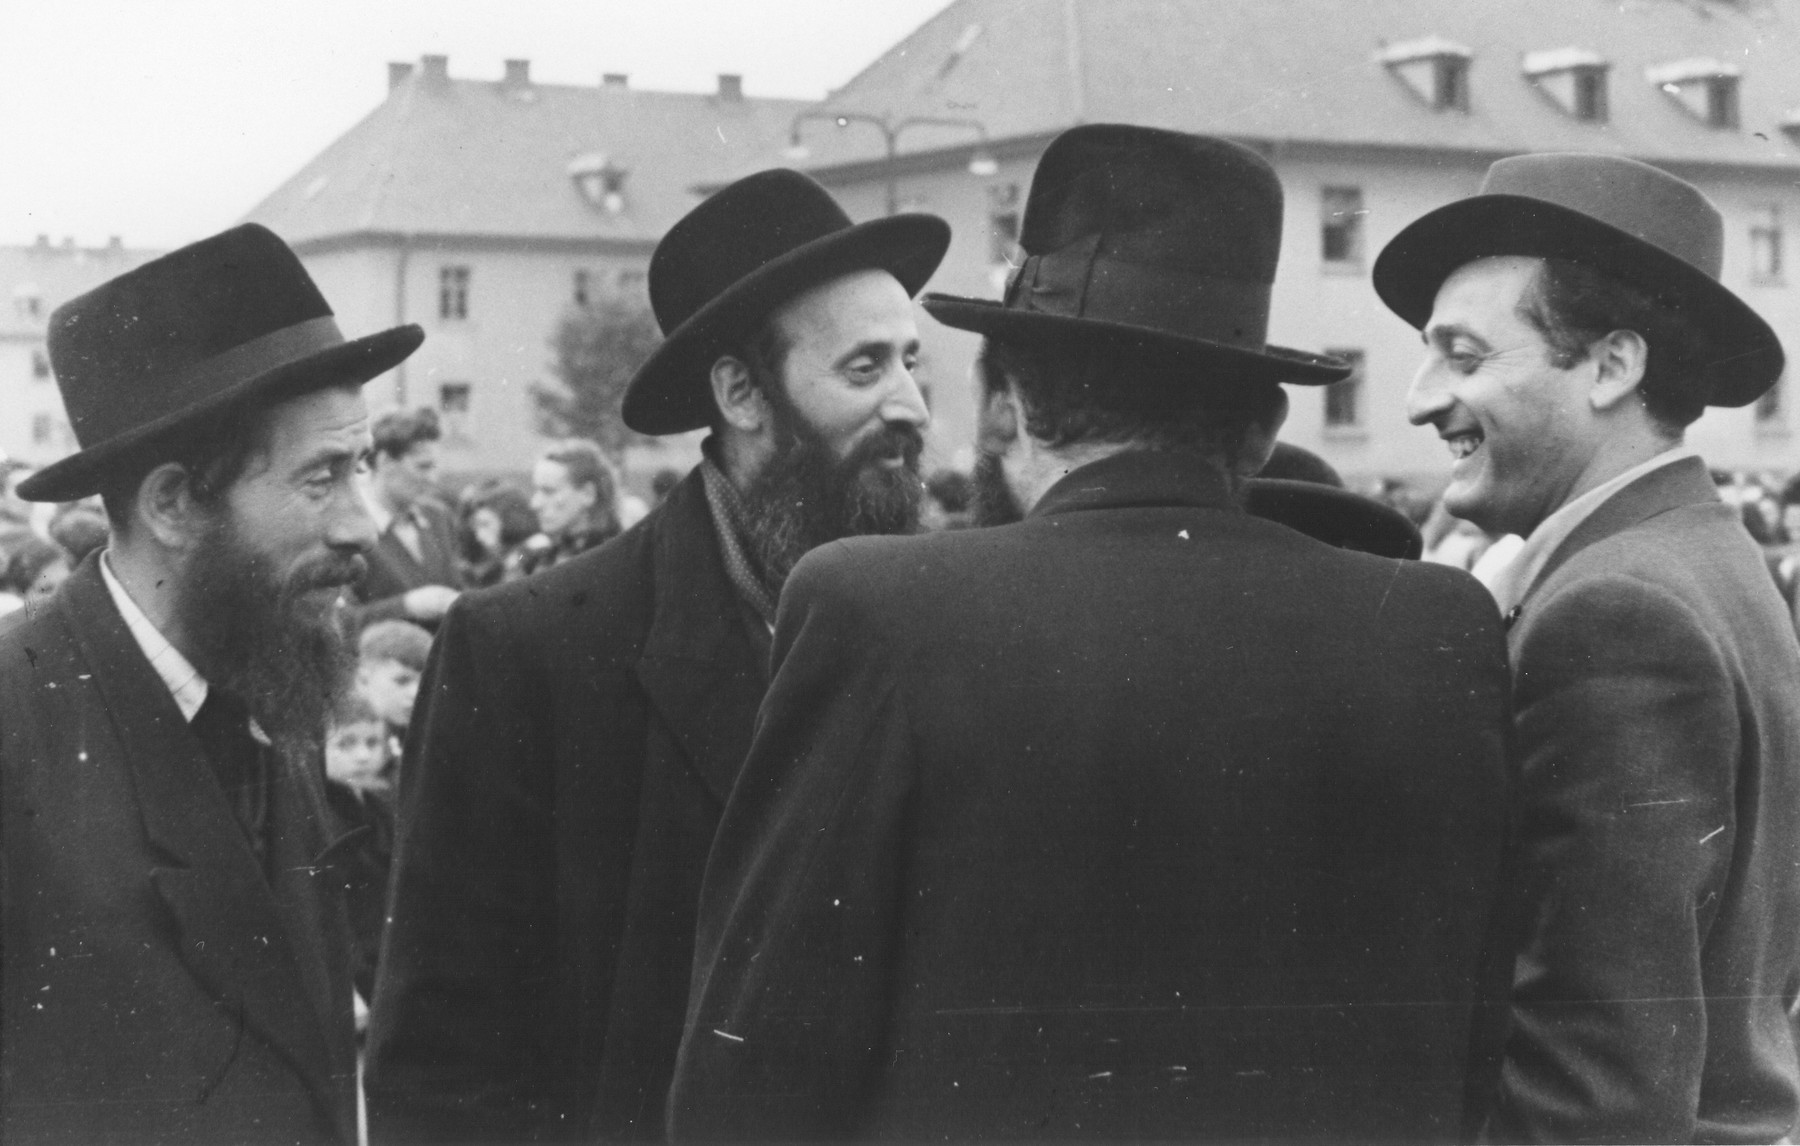 A group of rabbis converses outside at the Bergen Belsen displaced persons camp during a demonstration protesting the return of the Exodus 1947 passengers to Germany.   Among those pictured are Zvi Helfgot [Azaria] (right), Israel-Moshe Olewski (back to photographer).  Also pictured is the Sorvosher Ruv, Rabbi Chaim Meisels, center.